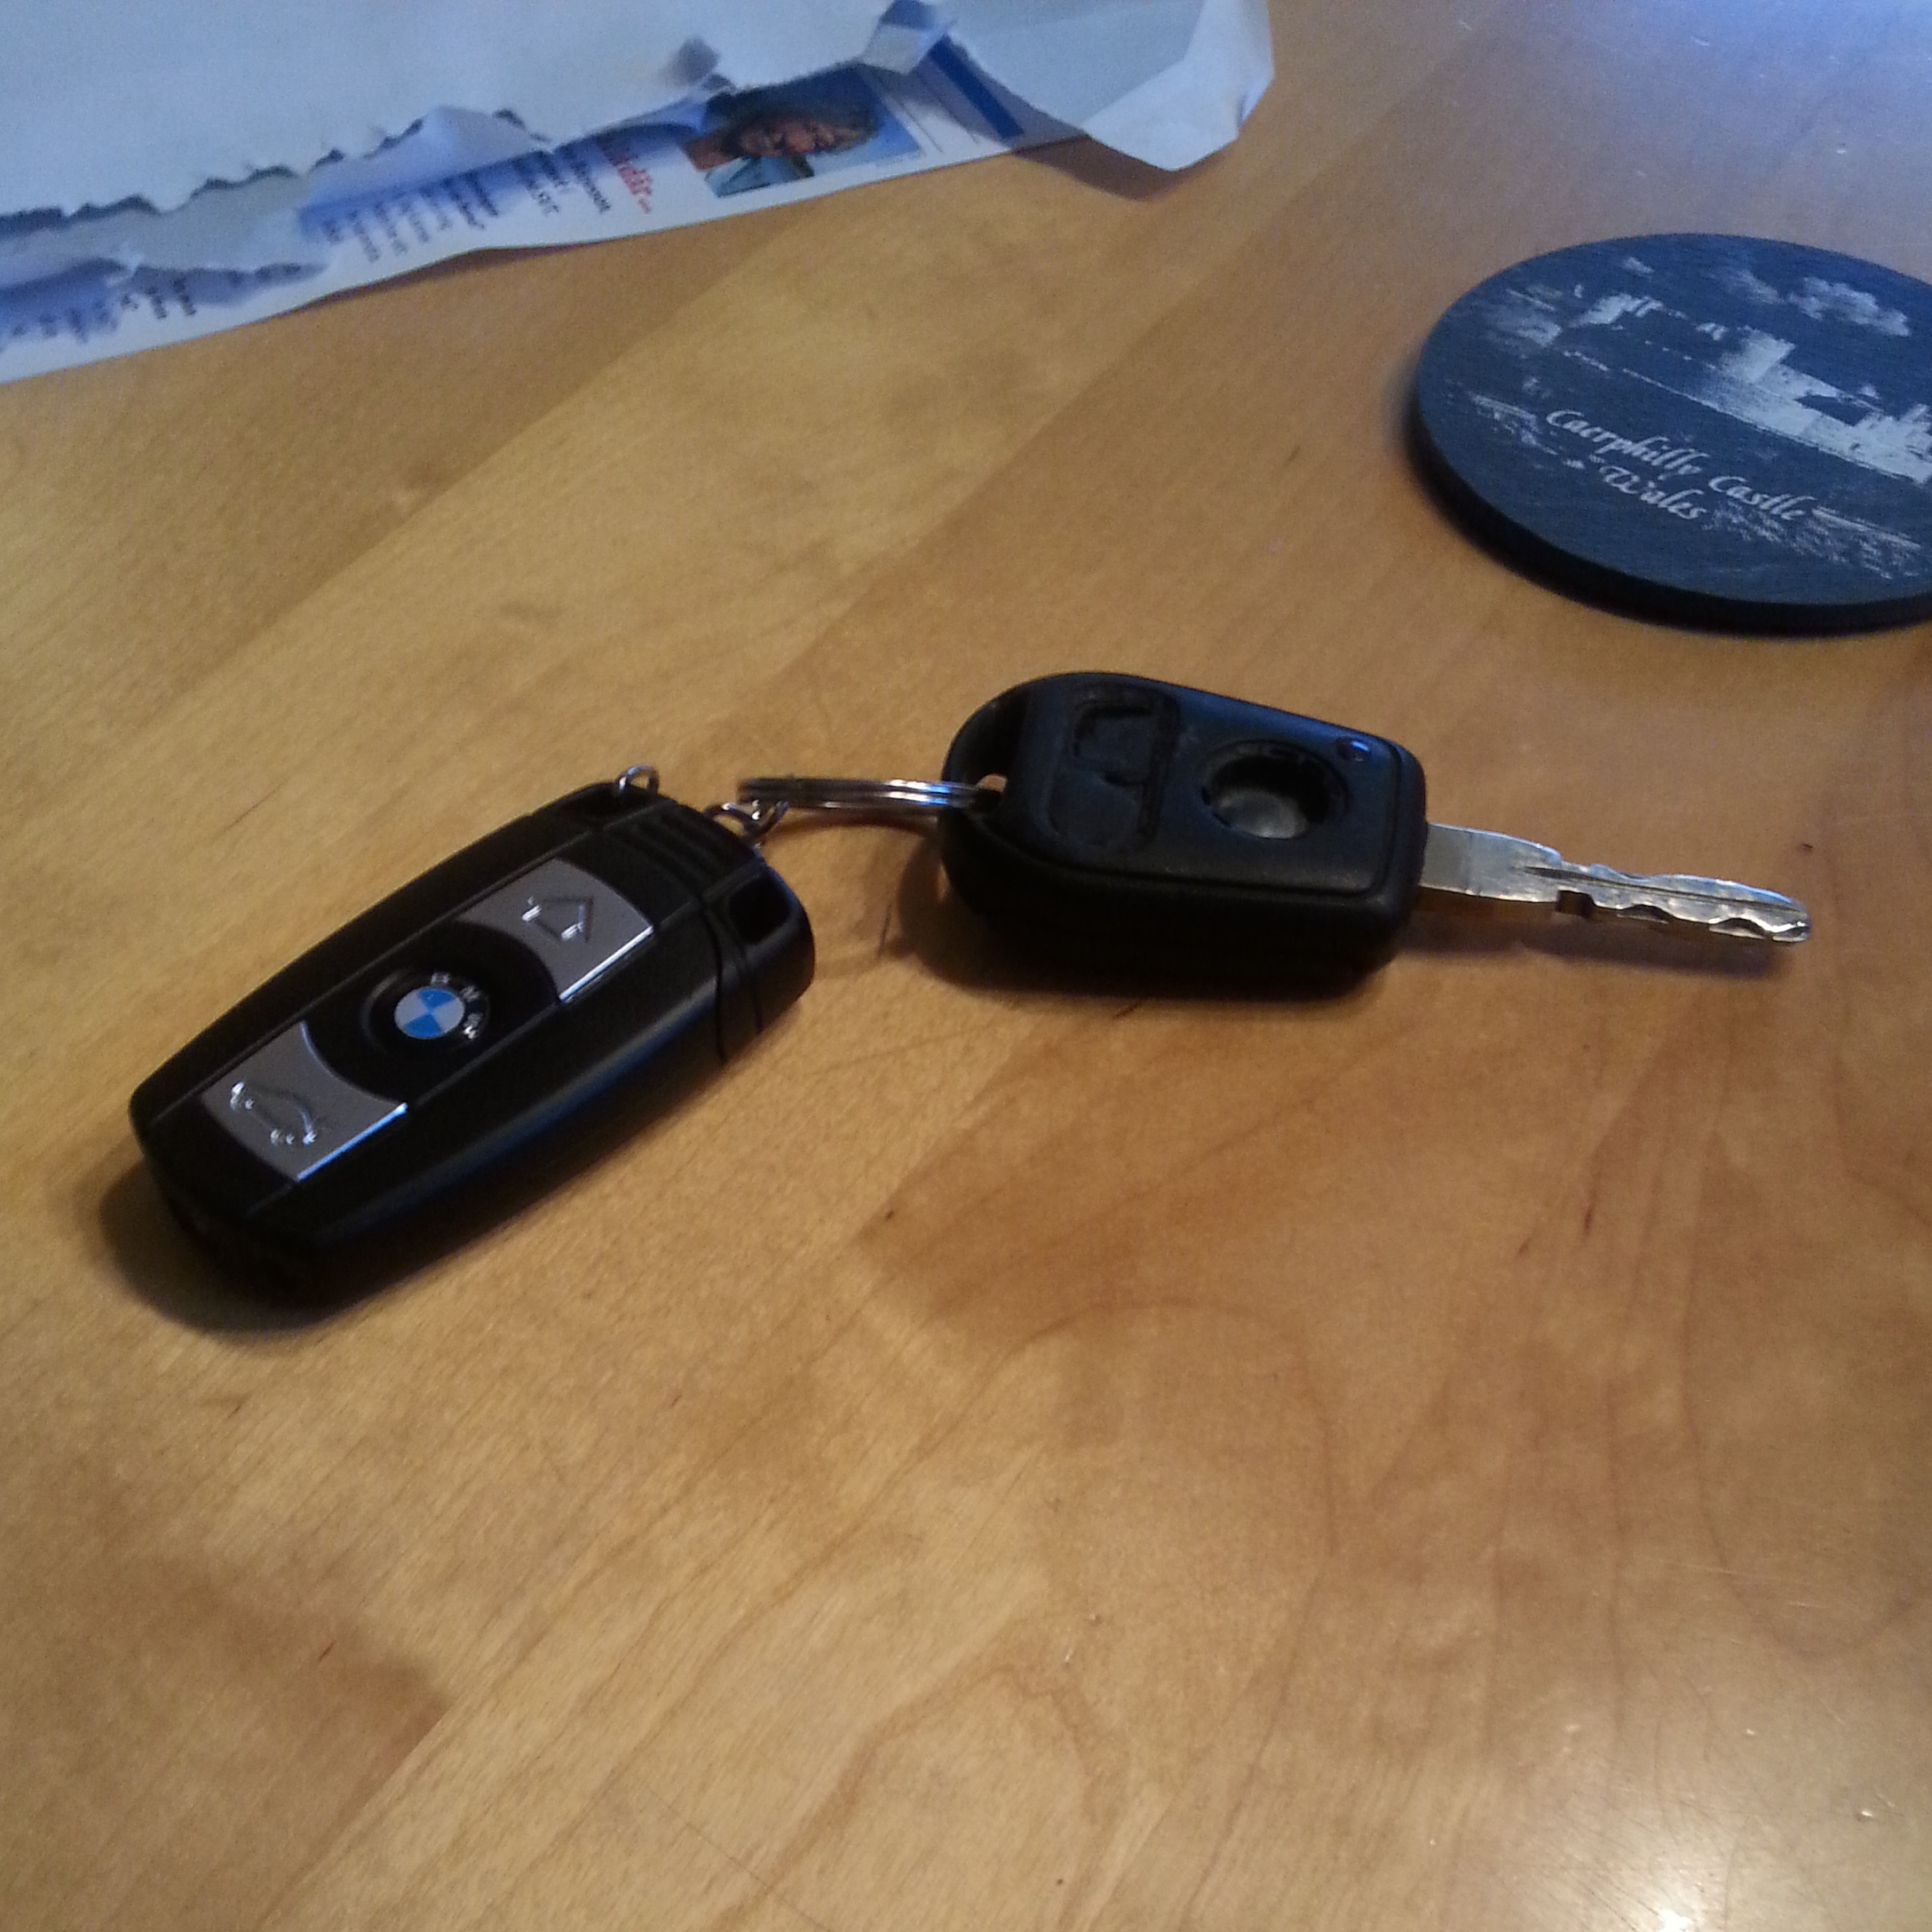 bmw are bmwkey models transponder automotive keys cover locksmith lost replacement we some of the below key locksmart auckland